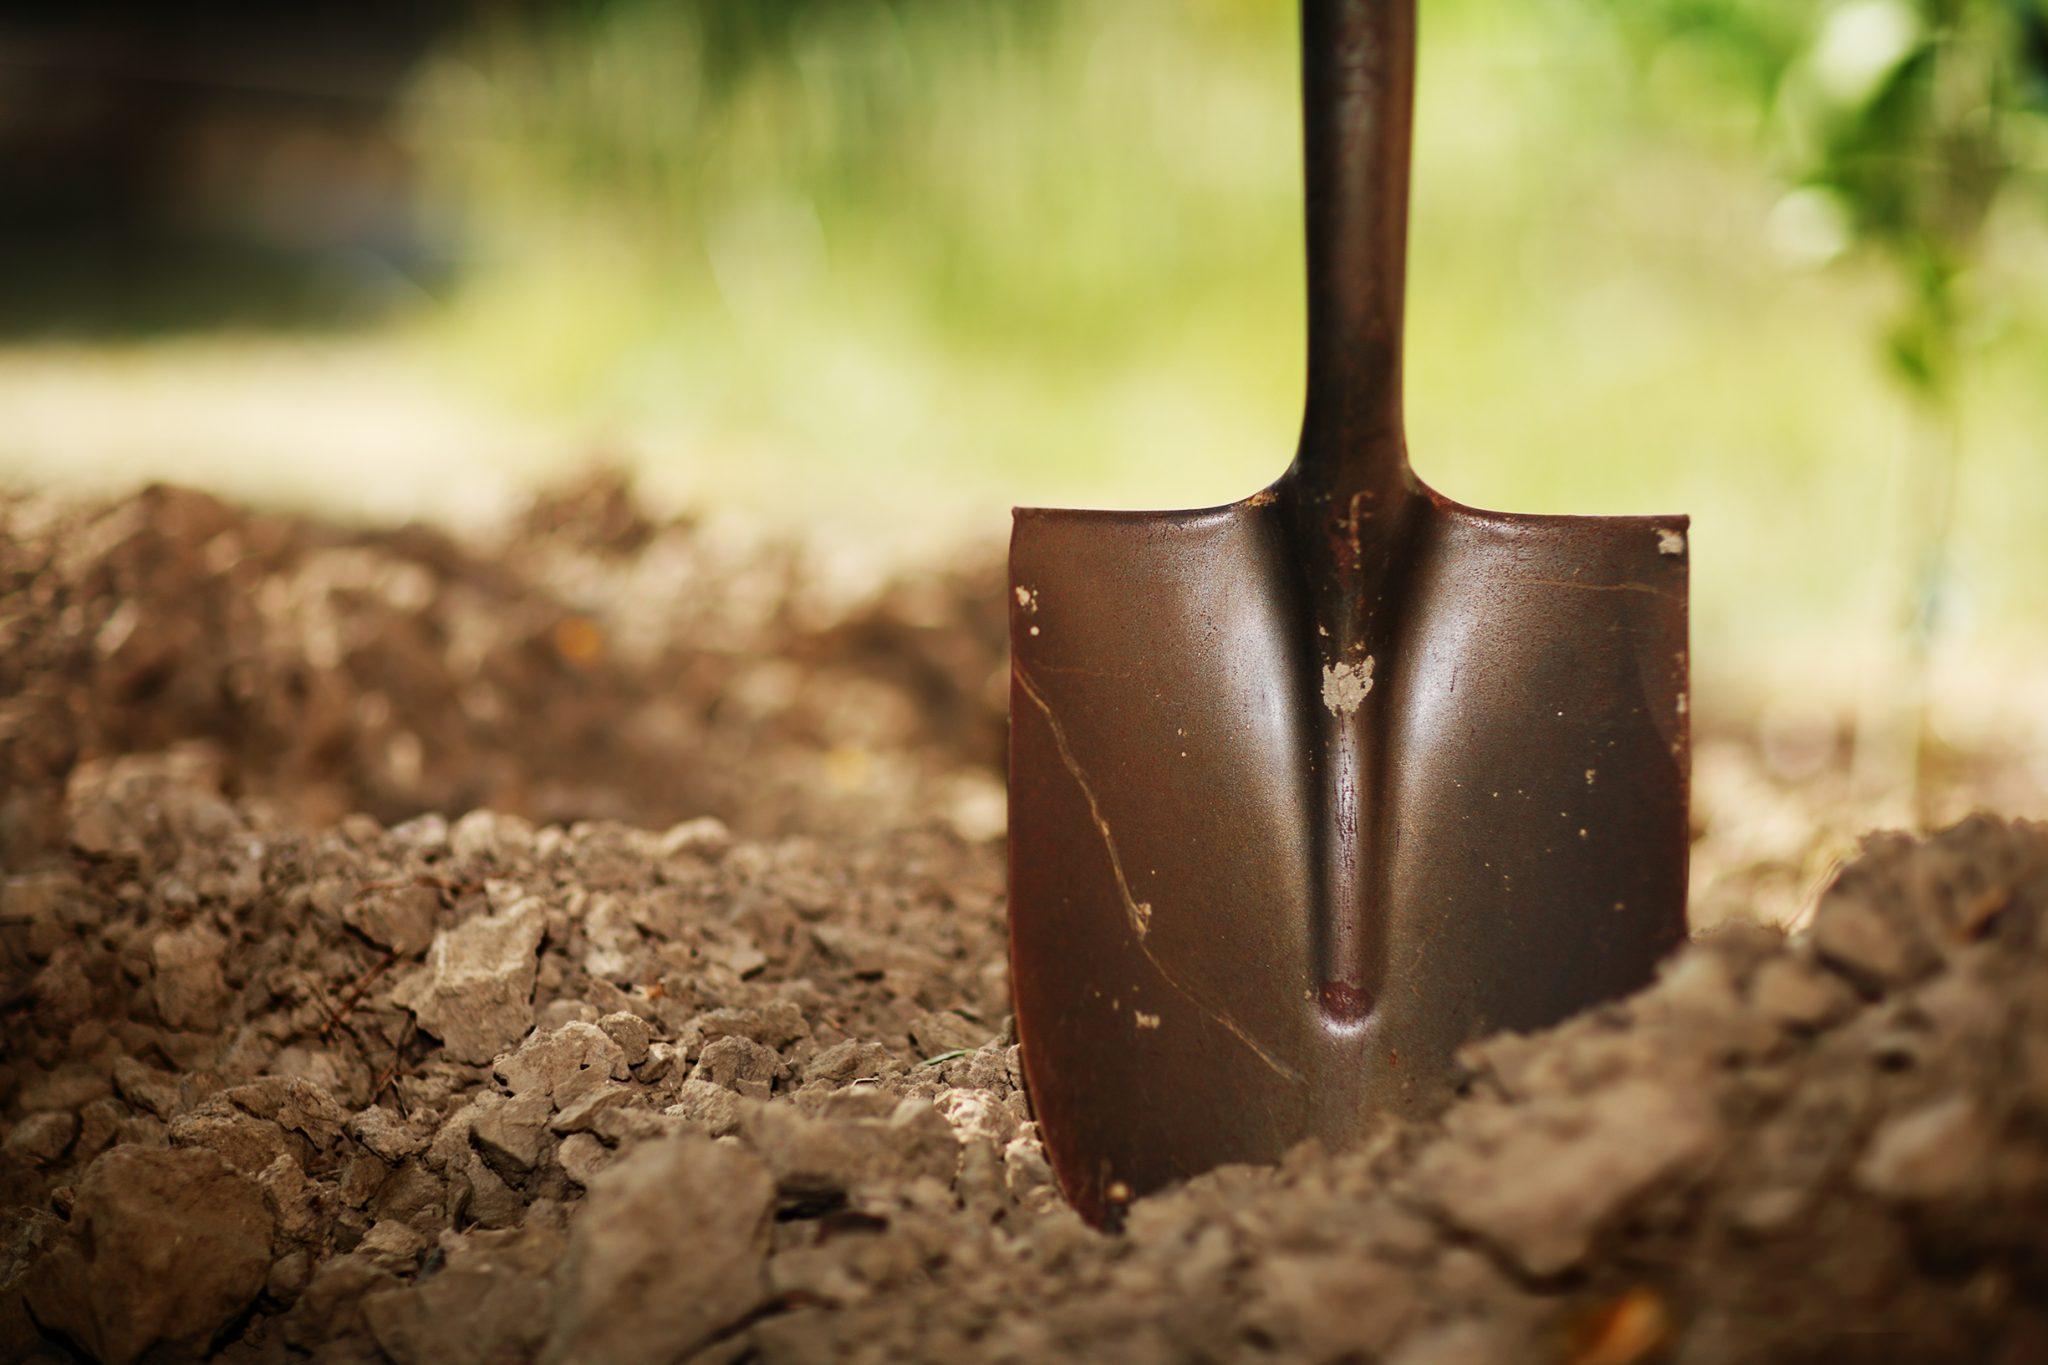 Soil with shovel. Close-up, shallow DOF. shutterstock.com/logoboom